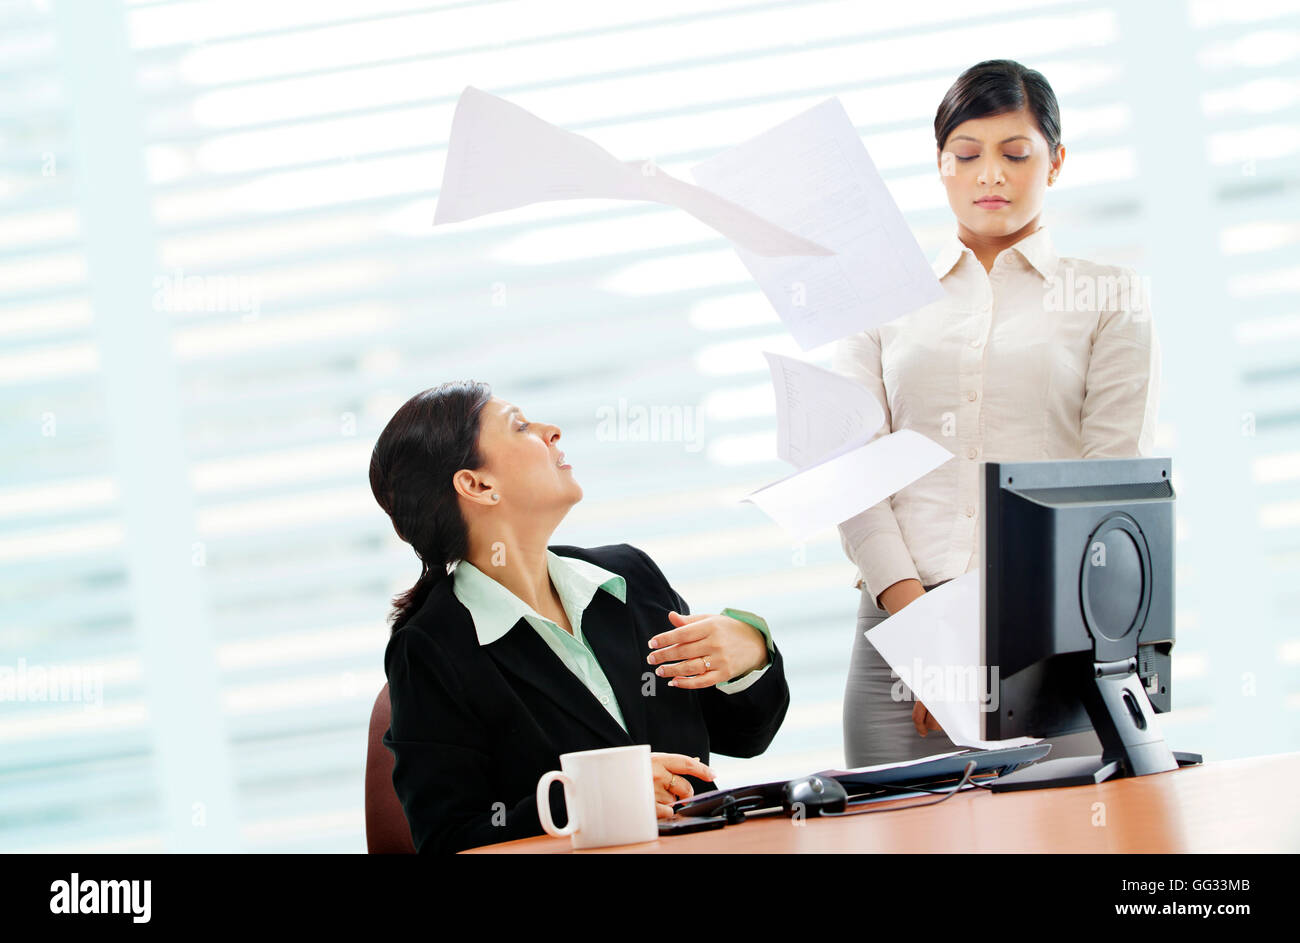 Furious mature businesswoman throwing papers on female executive - Stock Image